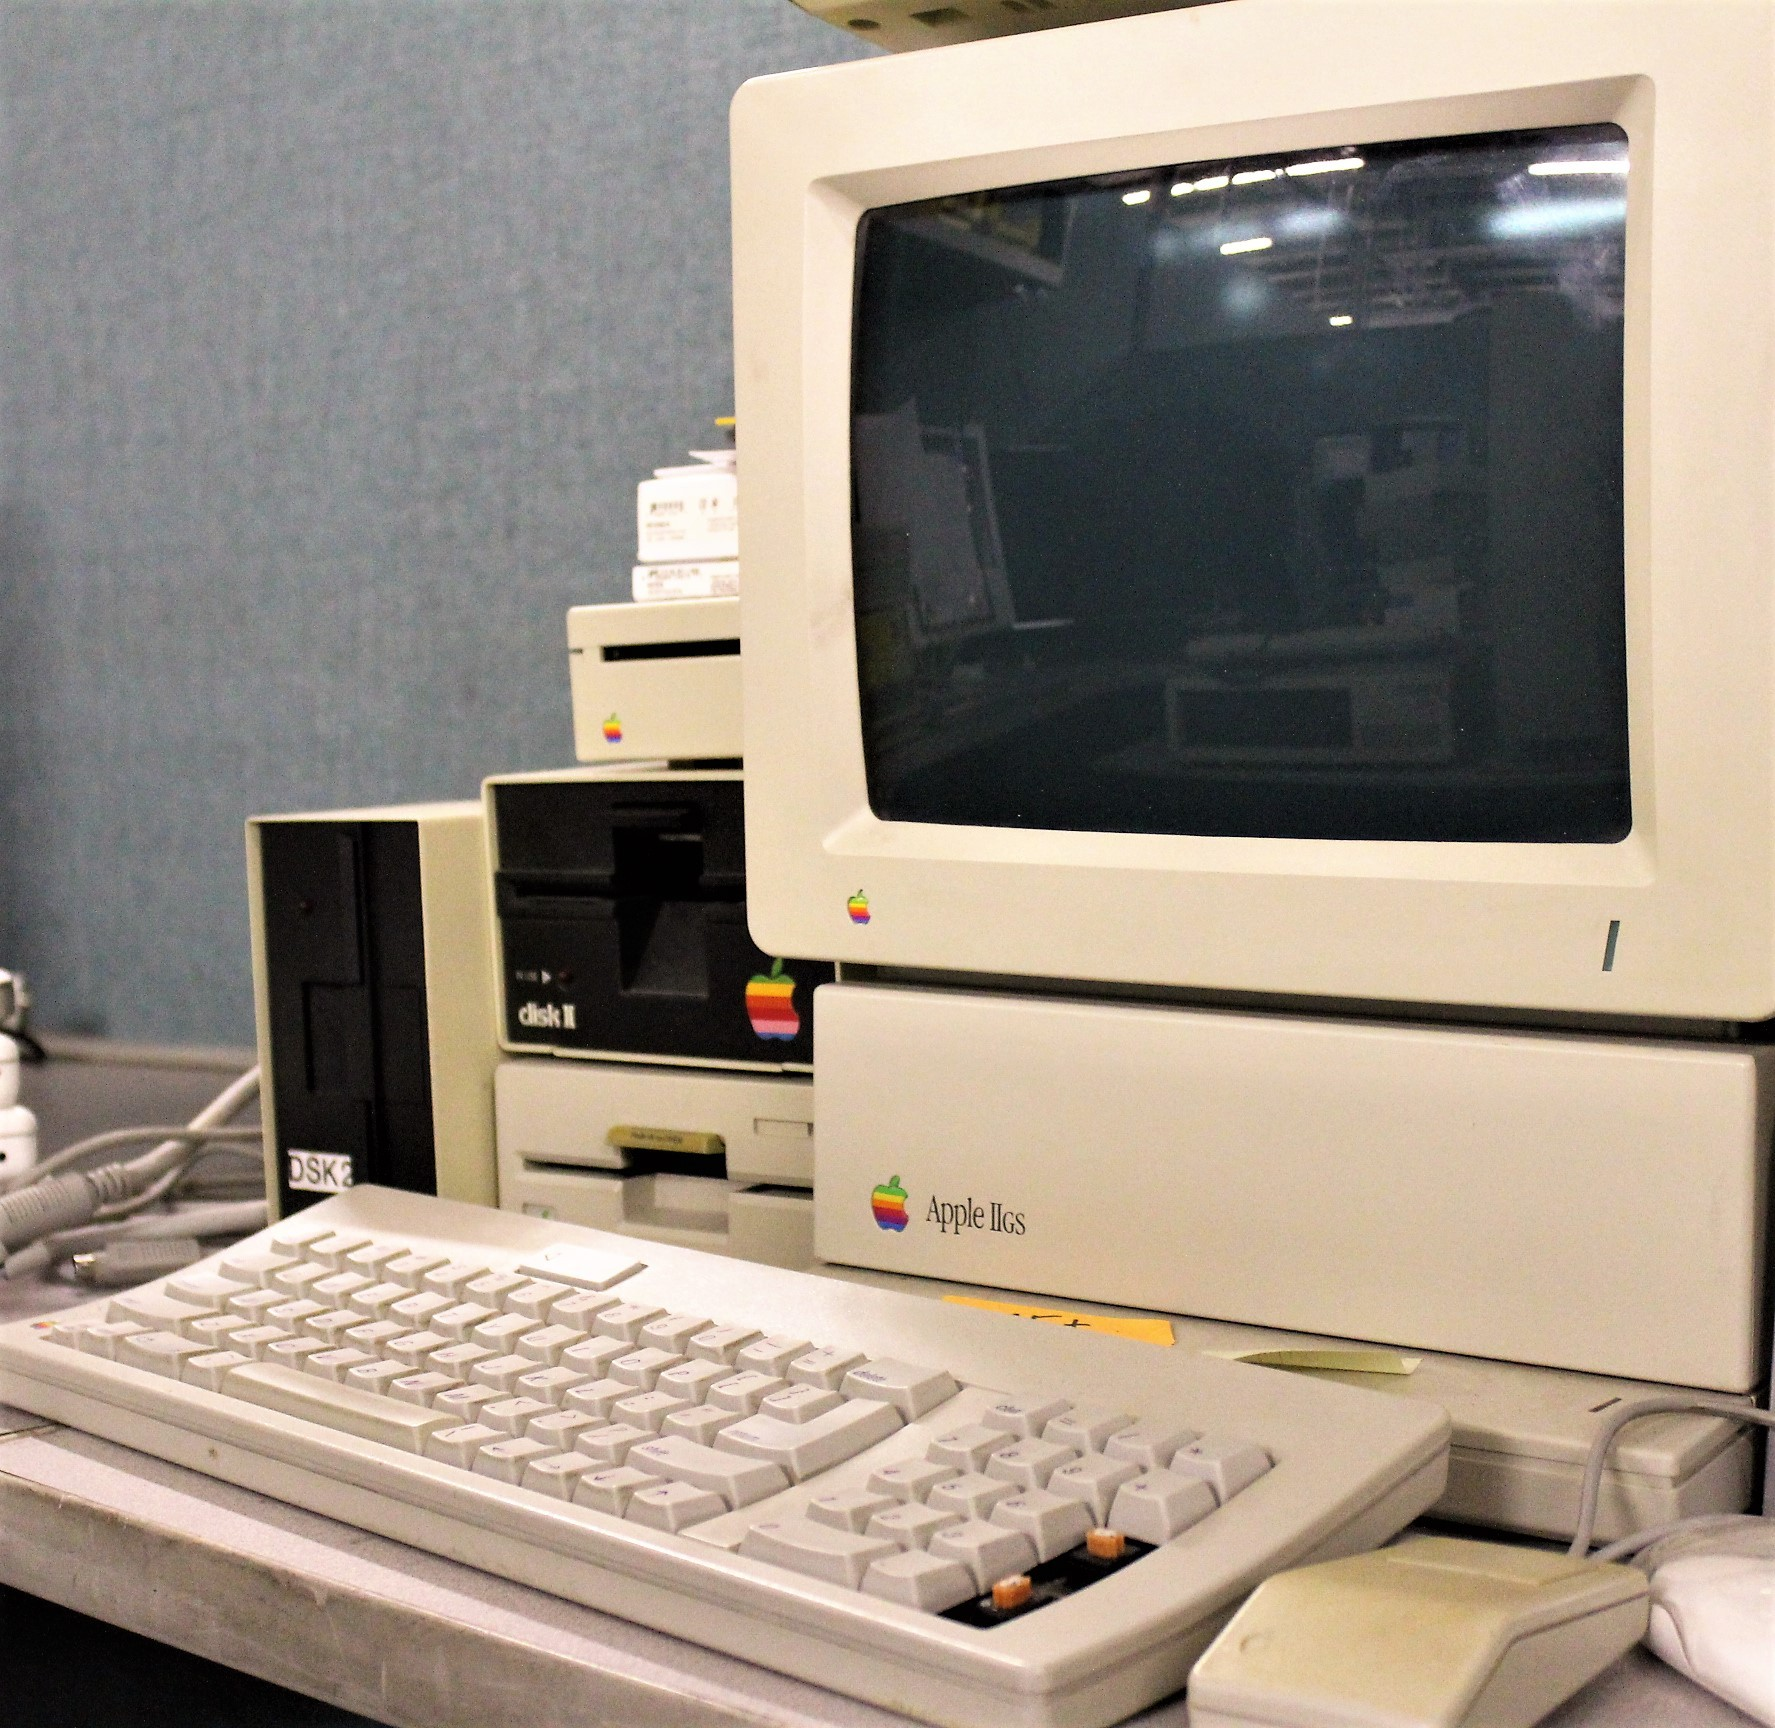 antique macintosh